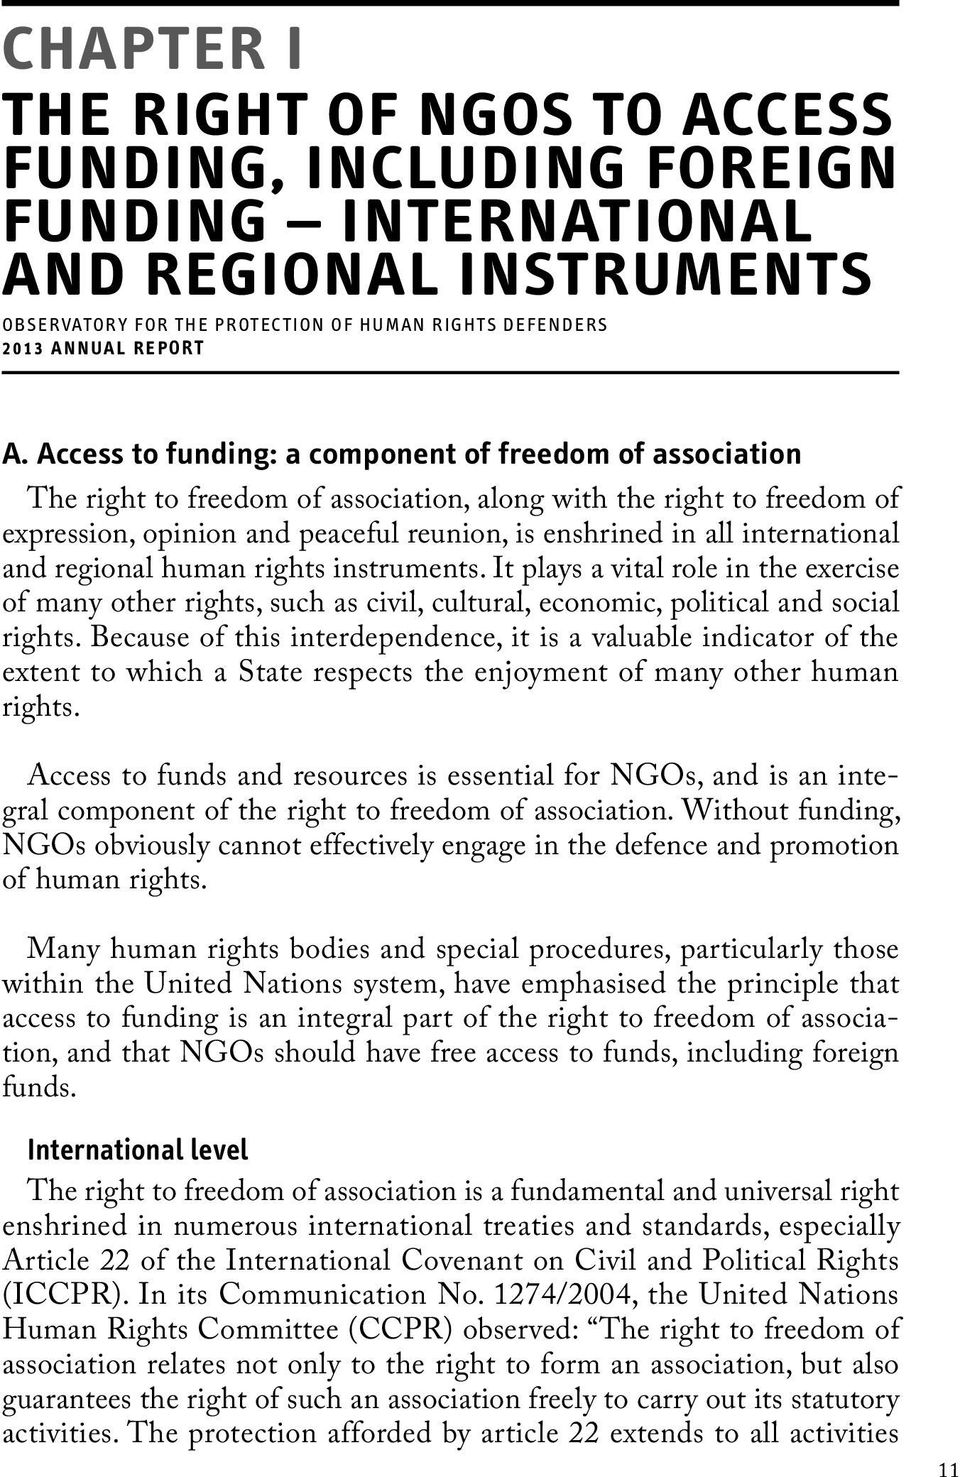 international and regional human rights instruments. It plays a vital role in the exercise of many other rights, such as civil, cultural, economic, political and social rights.